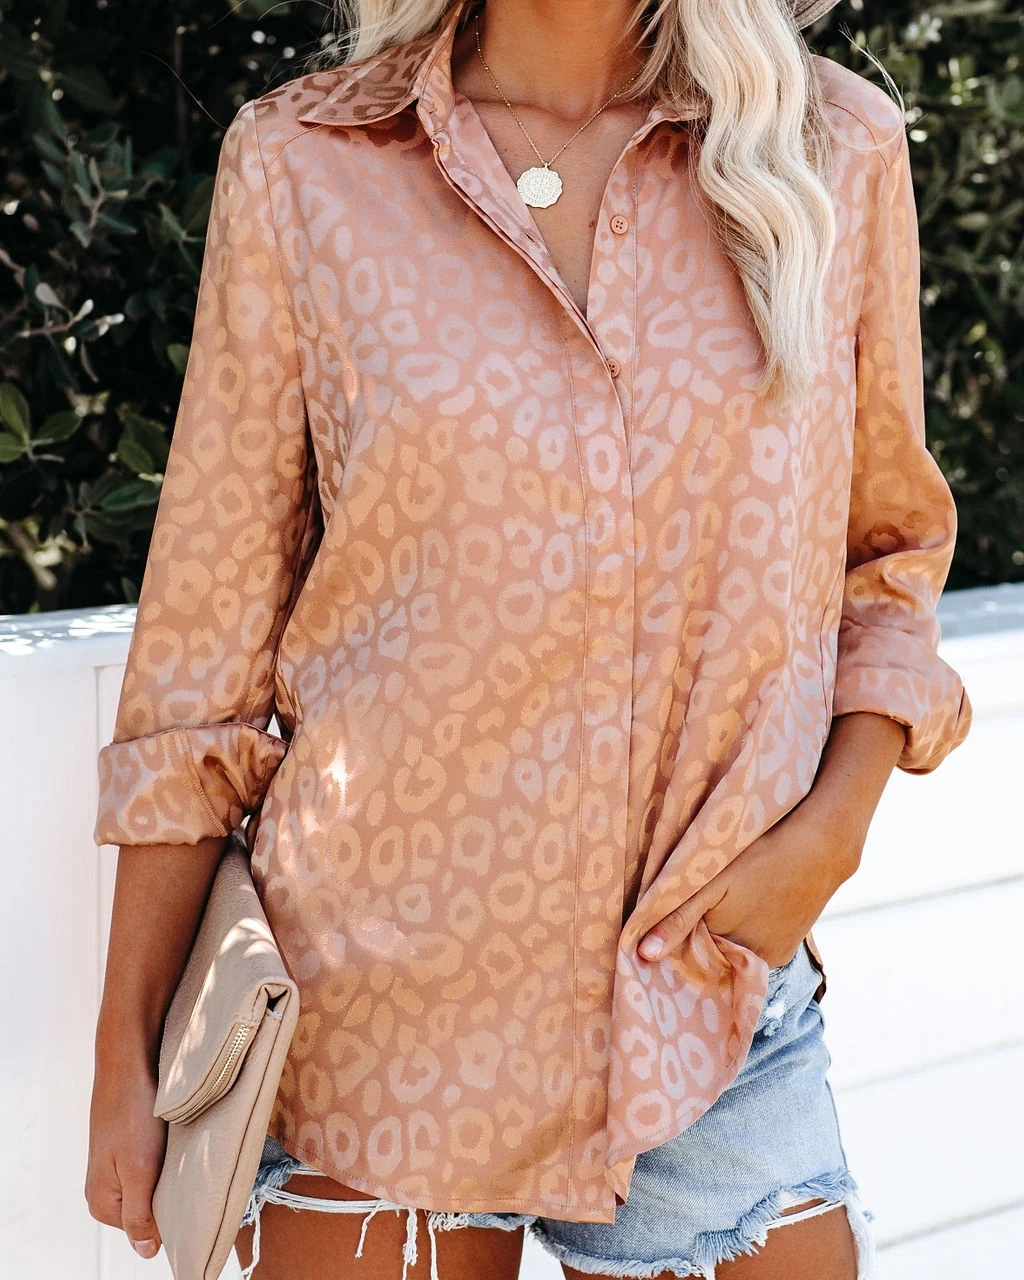 autumn and winter new leopard jacquard all-match fashion split long-sleeved shirt  NSYD3706